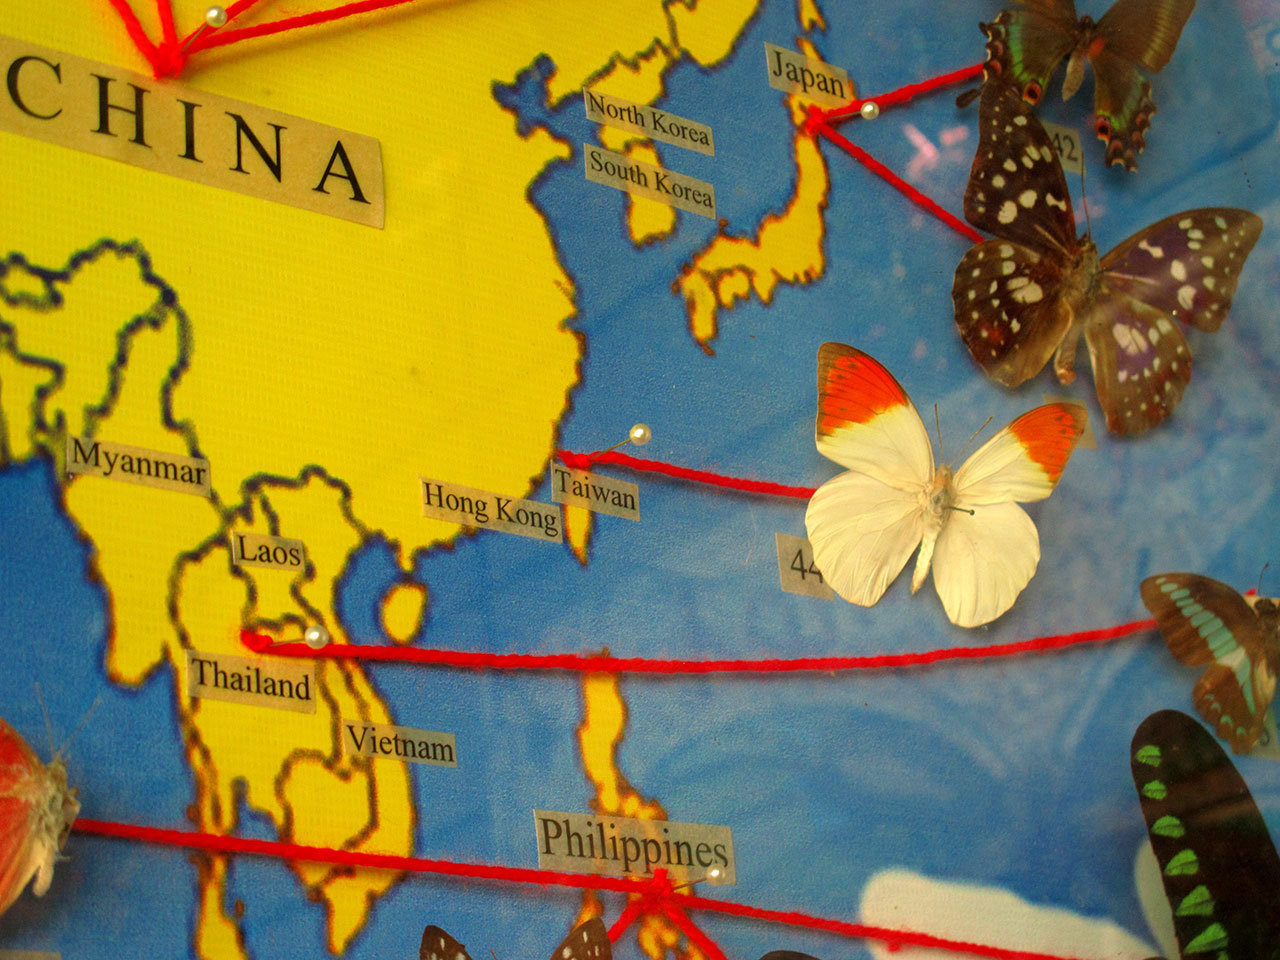 Taiwan and the Philippines – distant relatives? Or closer neighbours than it would appear?